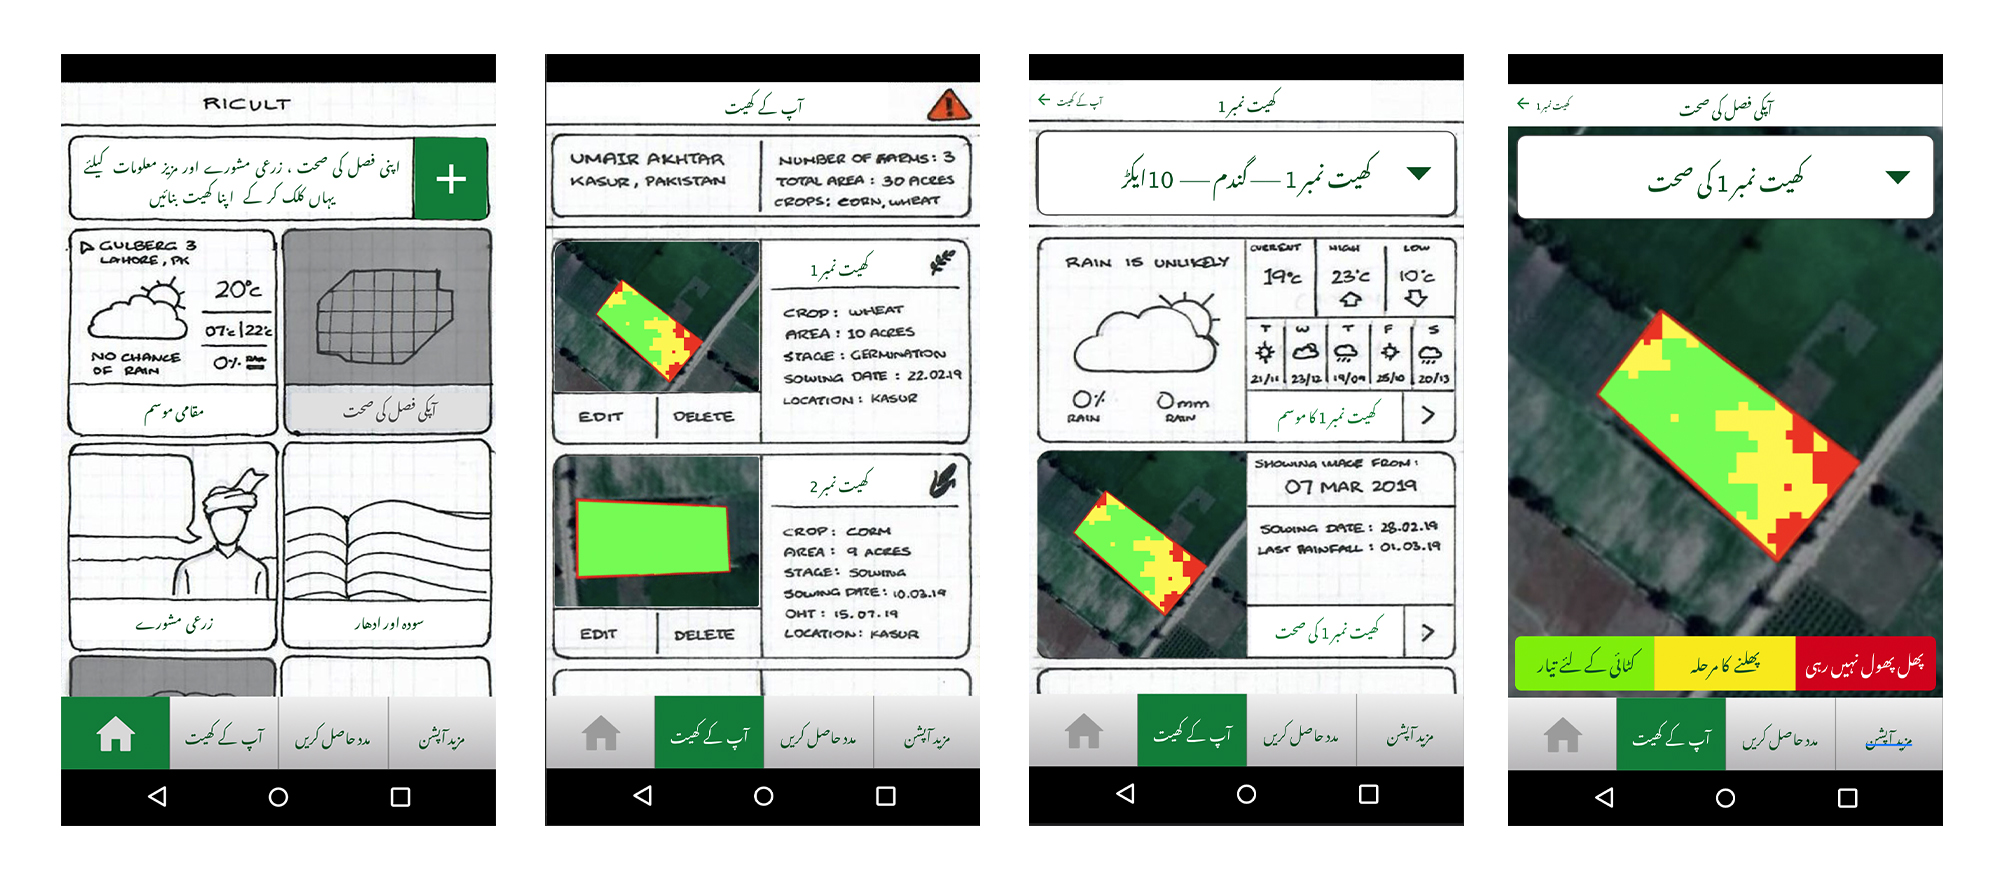 We began testing on Android phones by adding digital elements on top of previously sketched screens